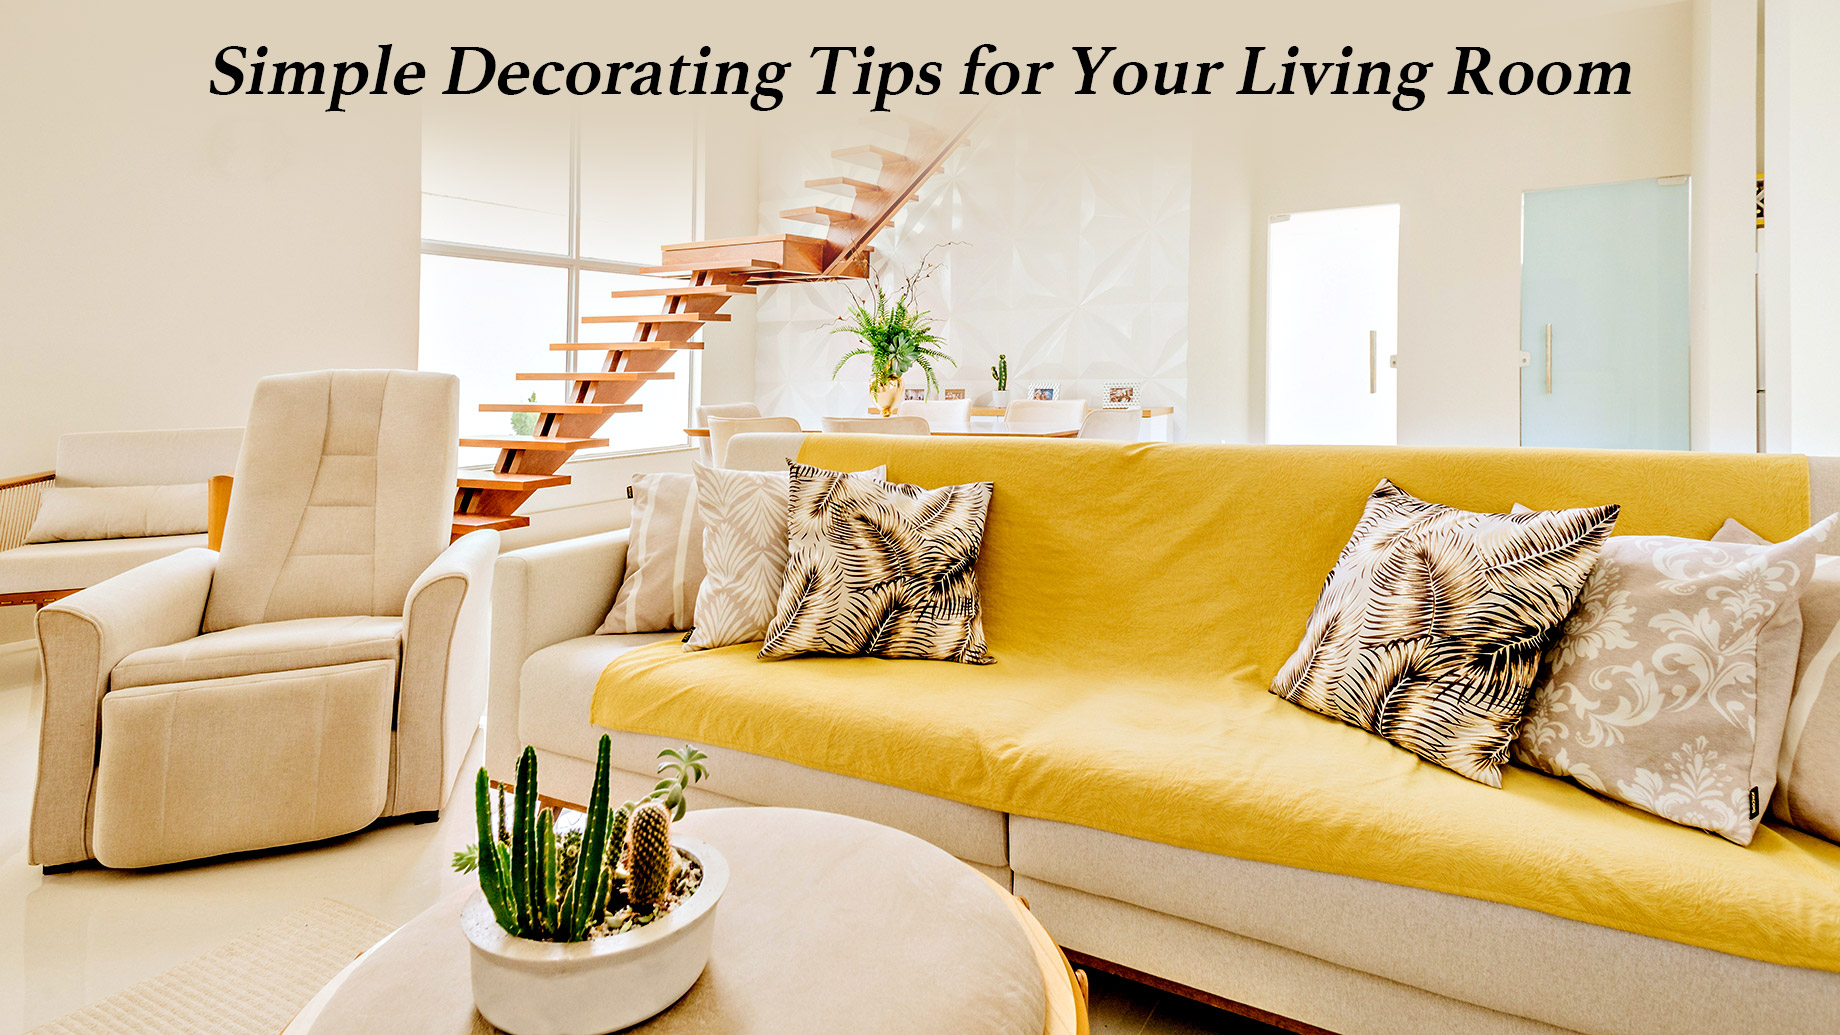 Simple Decorating Tips for Your Living Room